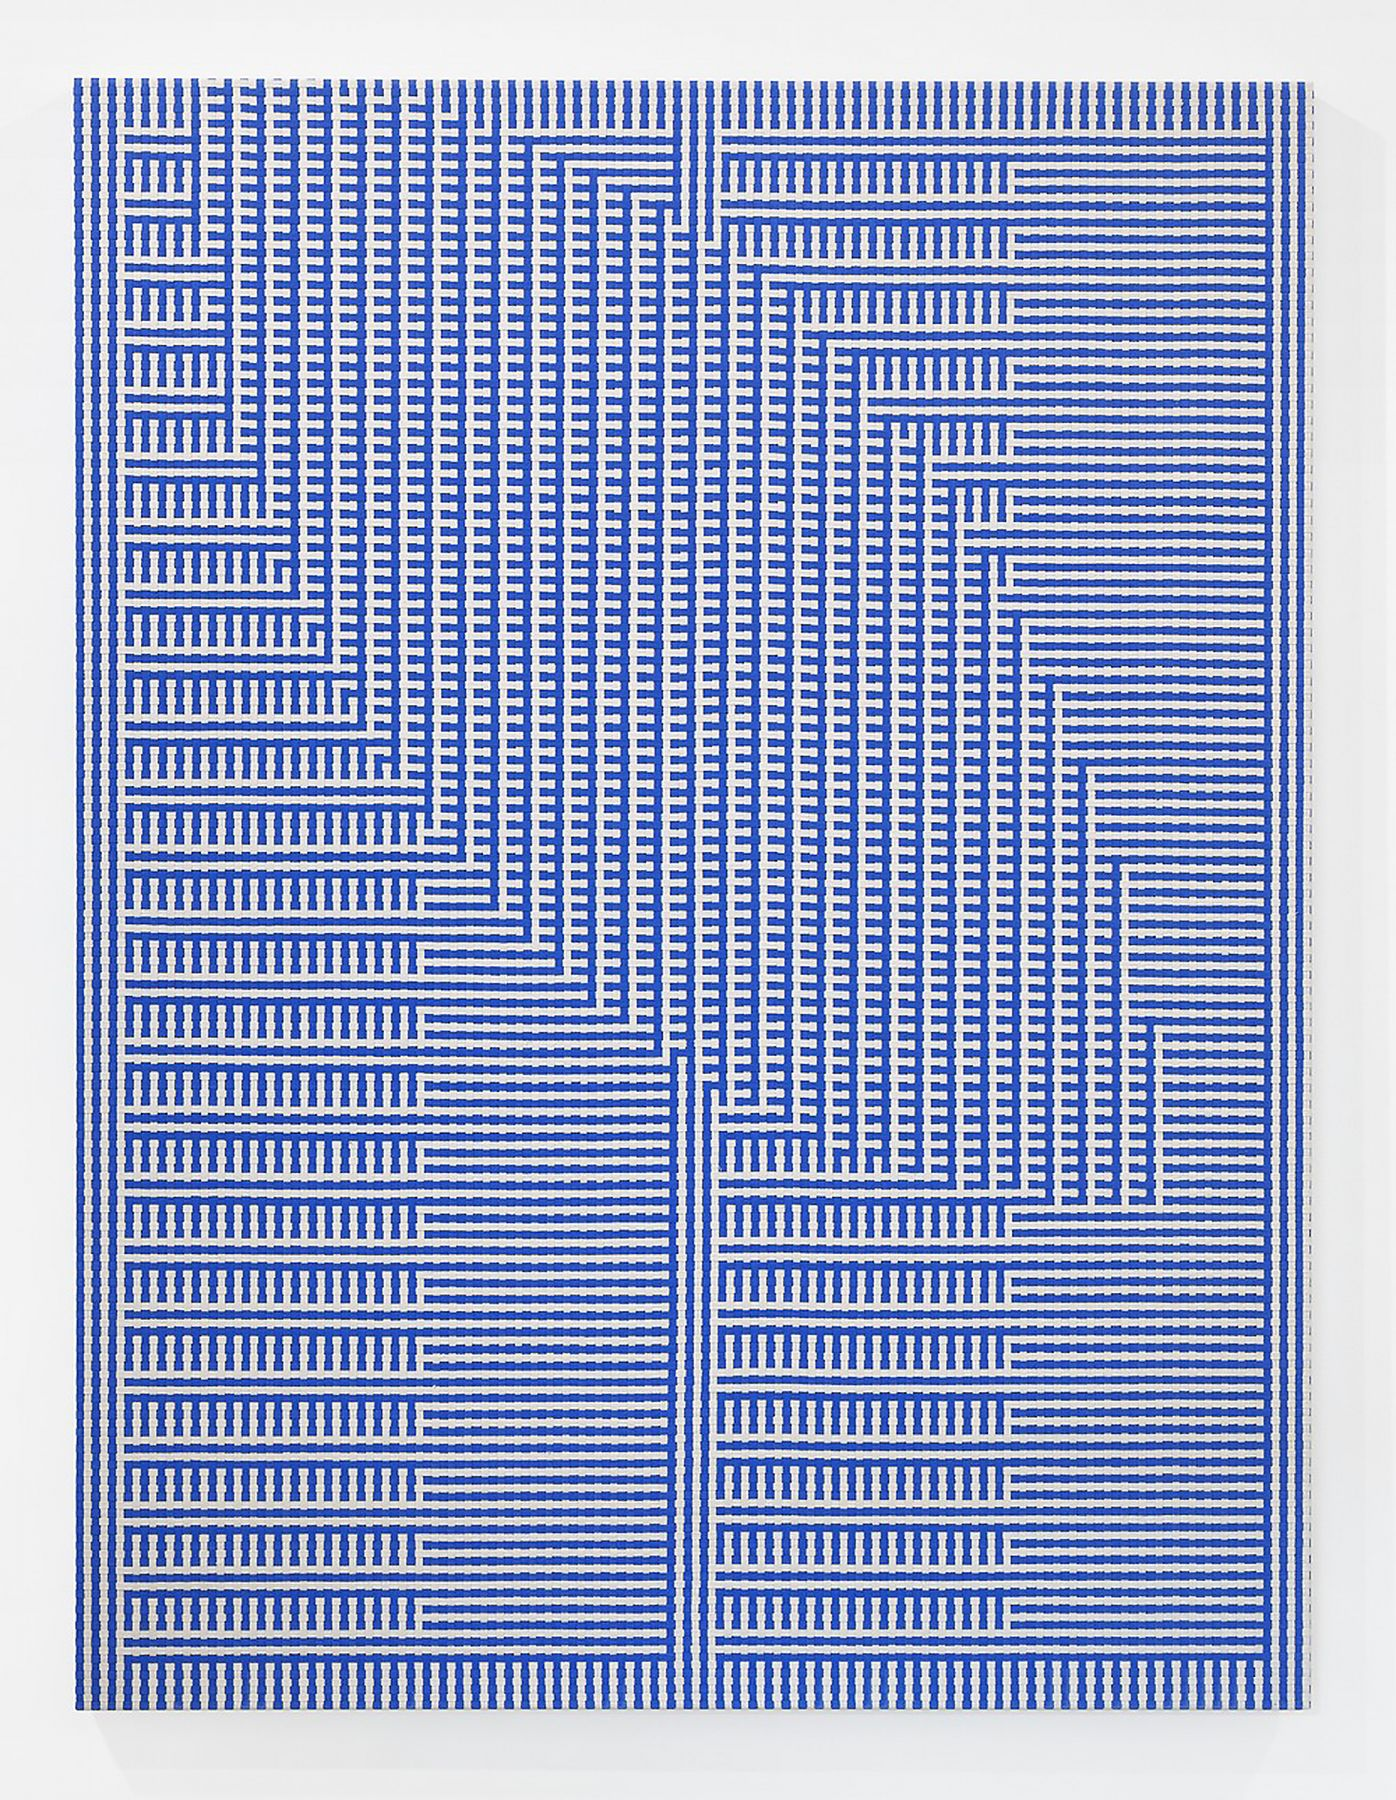 Tauba Auerbach, Shadow Weave - Comb/Void I, 2013